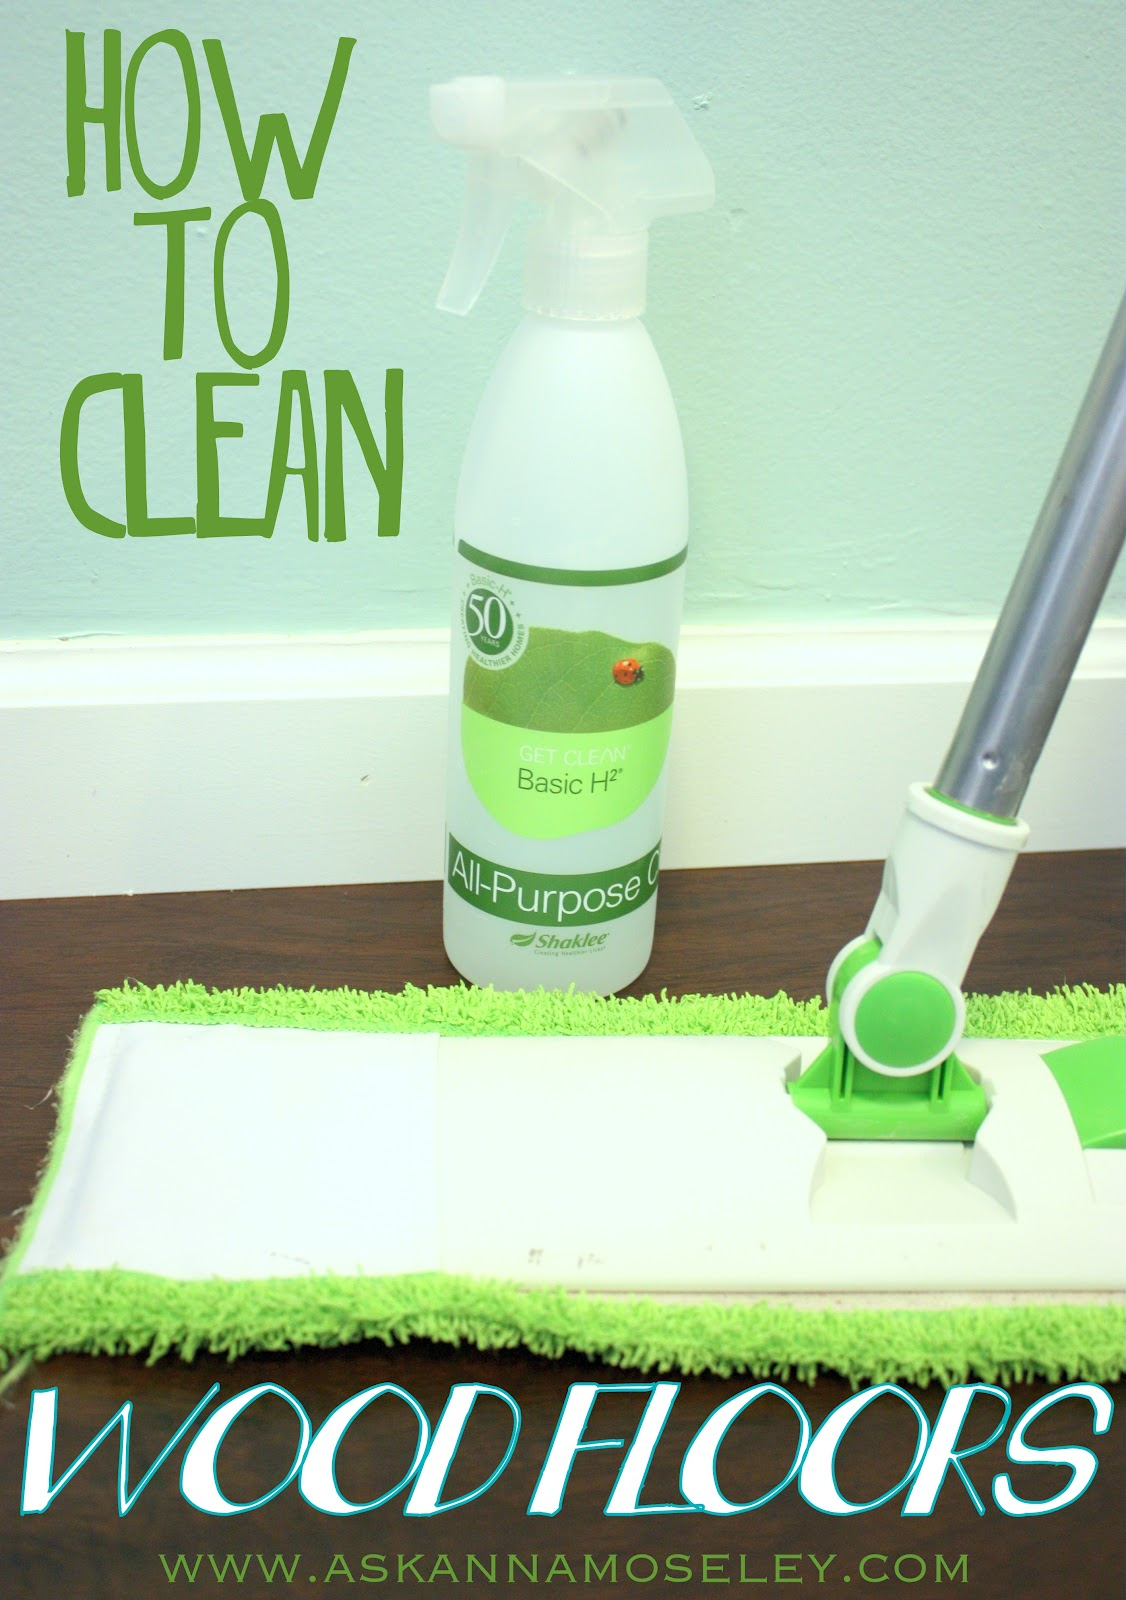 How to Clean Wood Floors without Chemicals